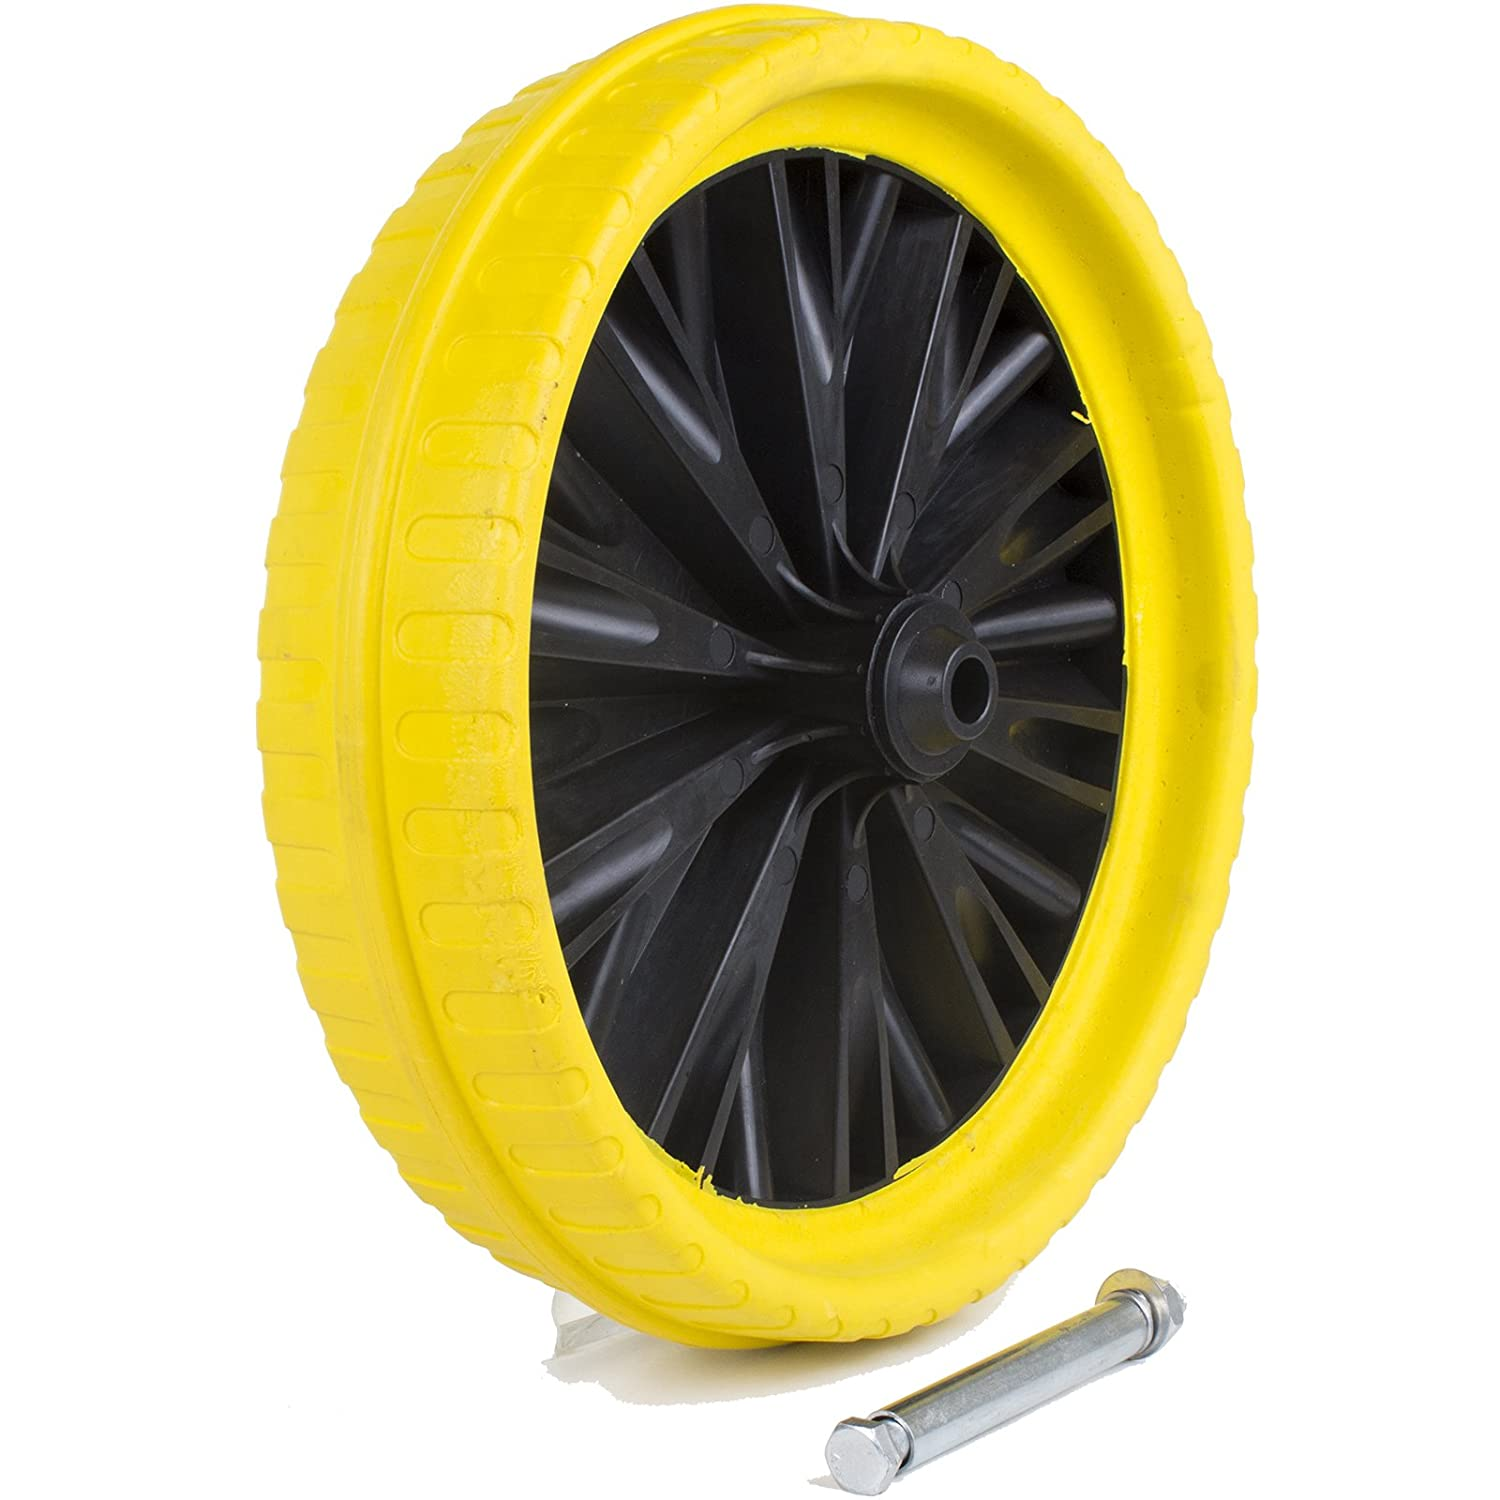 Marko Tools 13' Yellow Puncture Proof Wheelbarrow Wheel Tyre Solid Lightweight Plastic/Foam